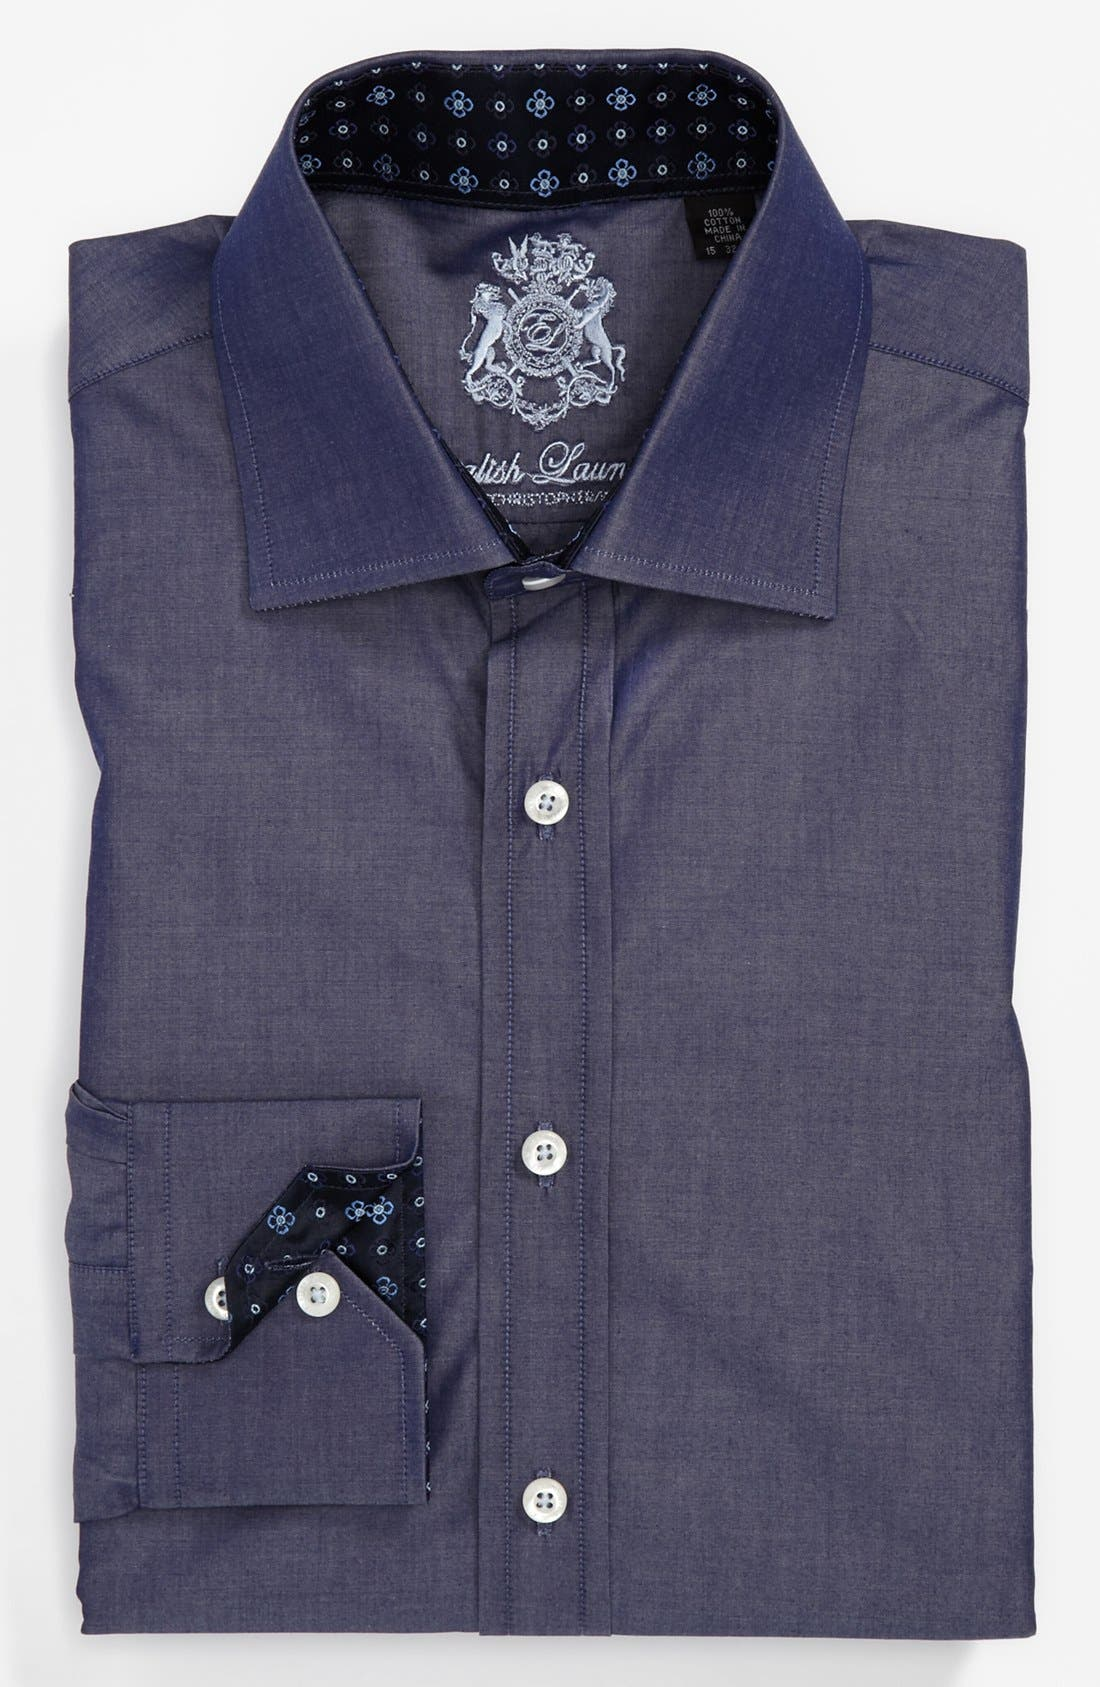 Alternate Image 1 Selected - English Laundry Trim Fit Dress Shirt (Online Only)